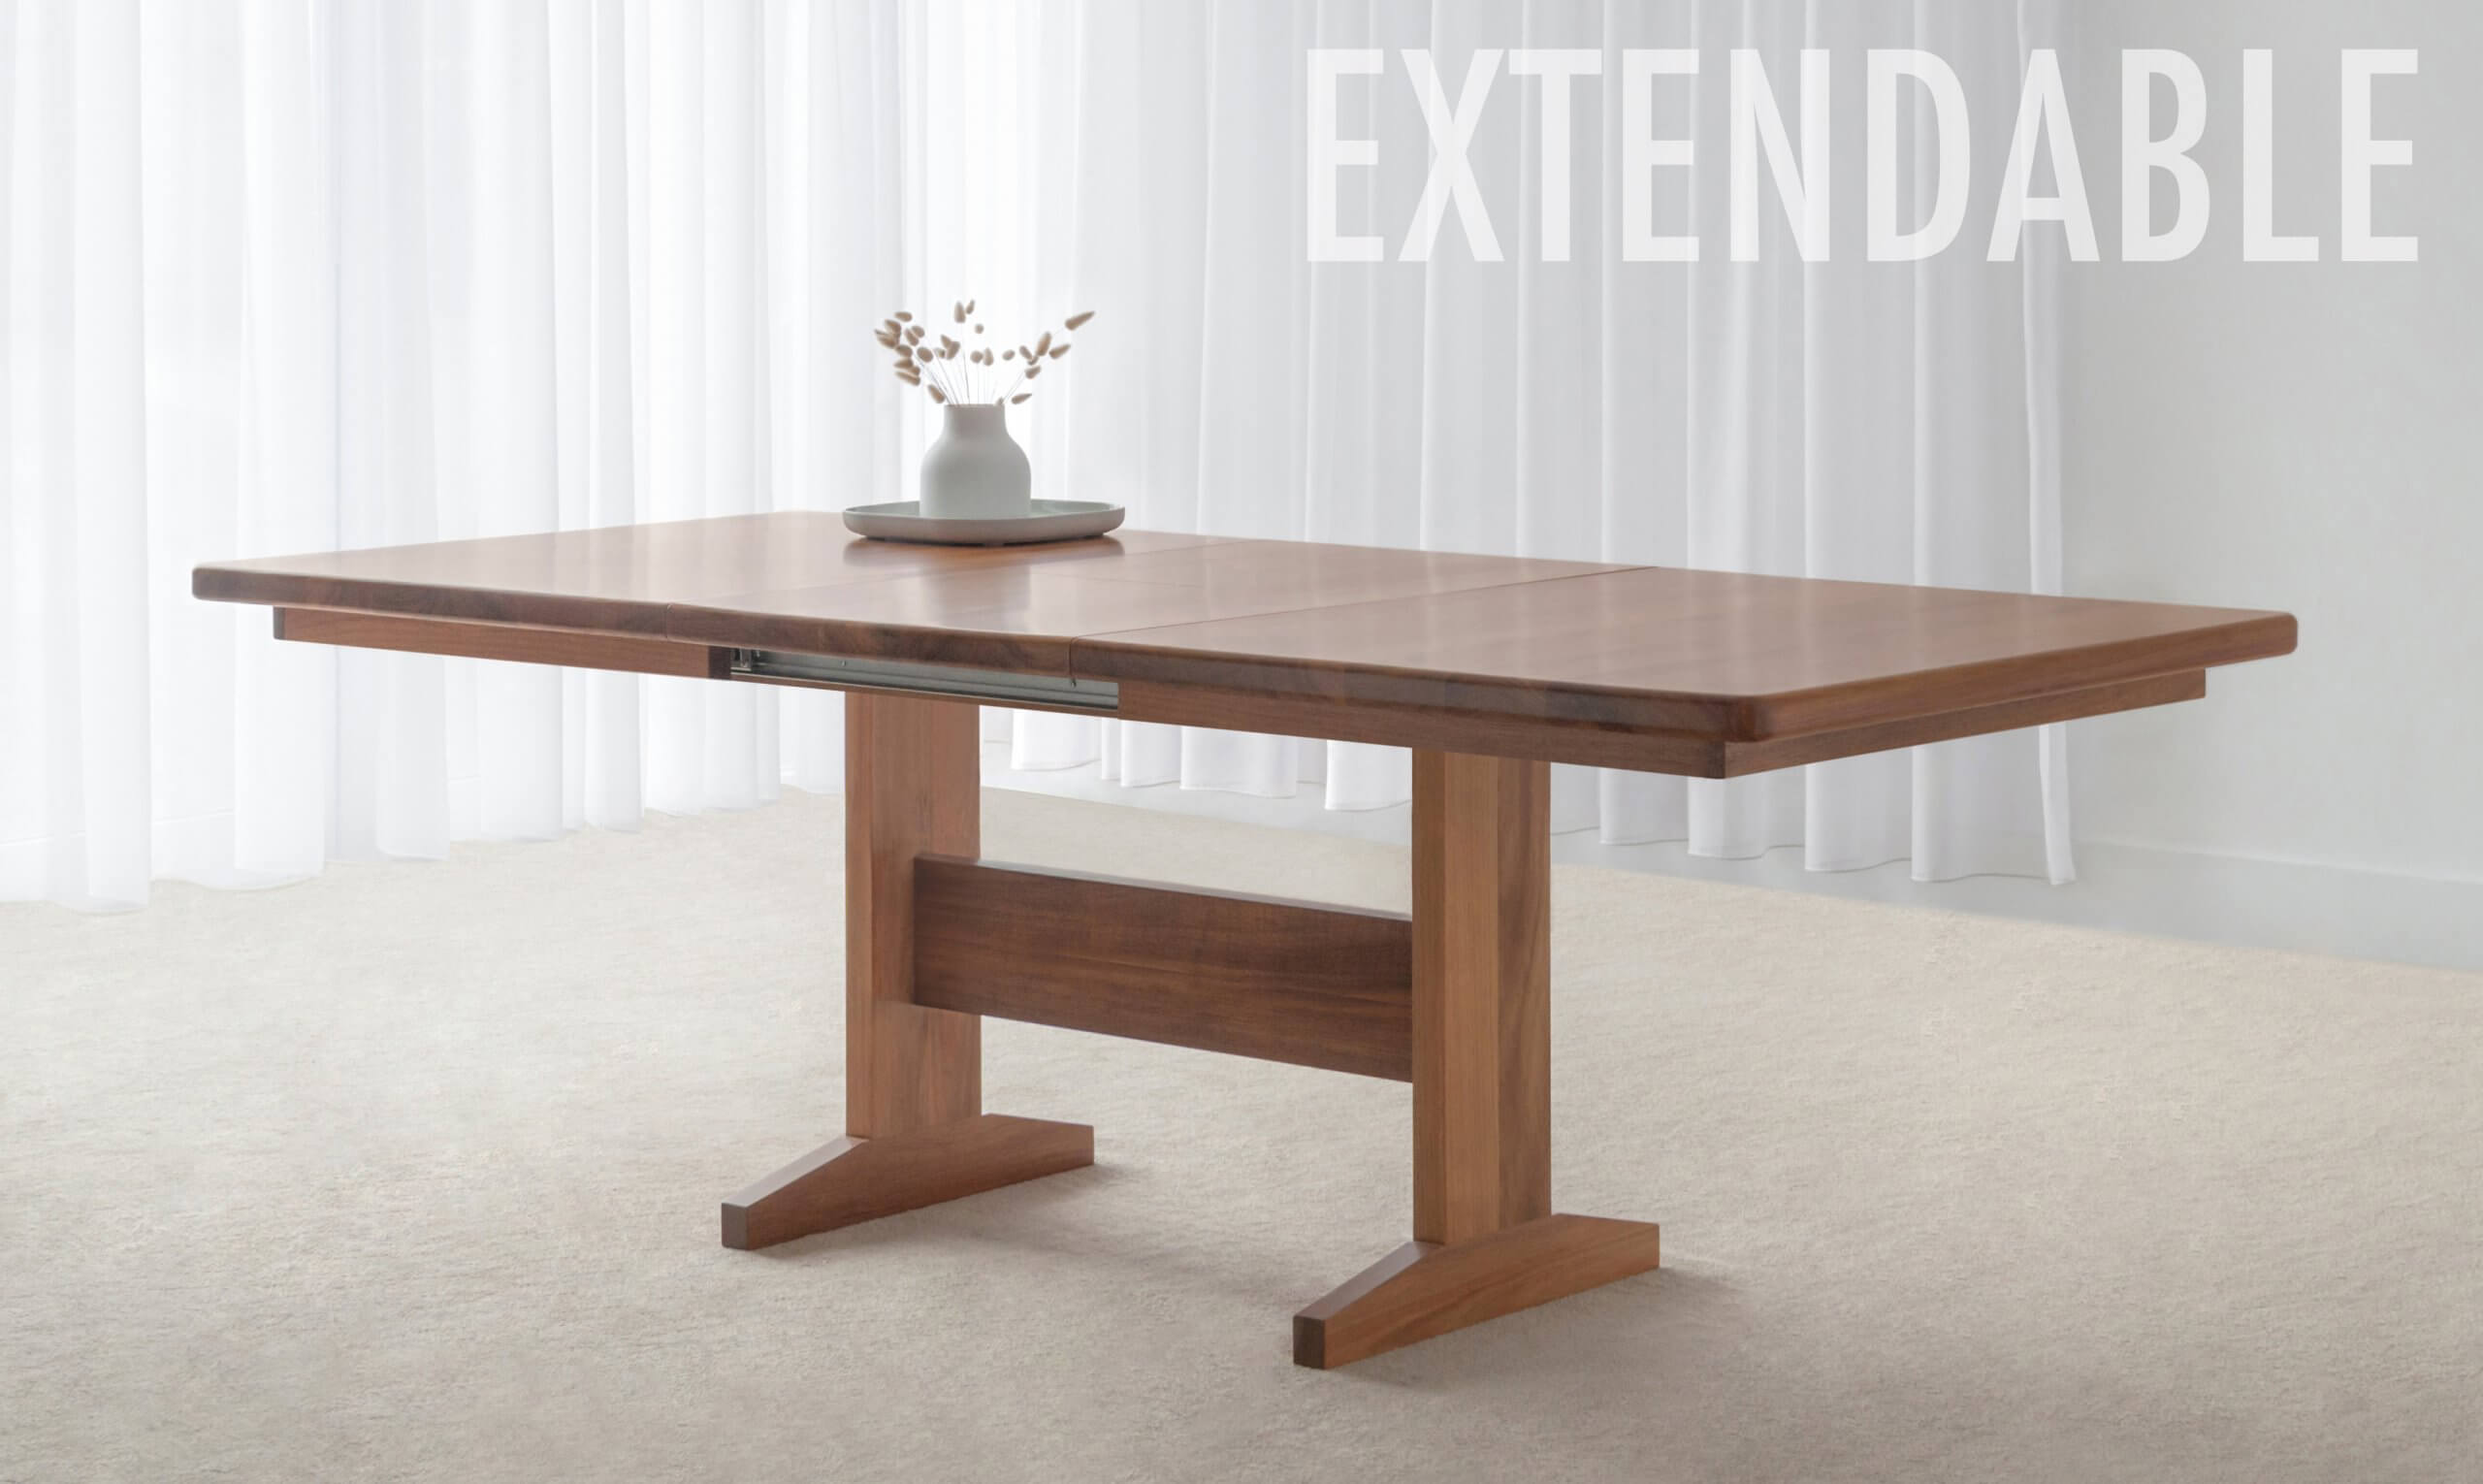 Extendable Dining Table crafted in hardwood timber